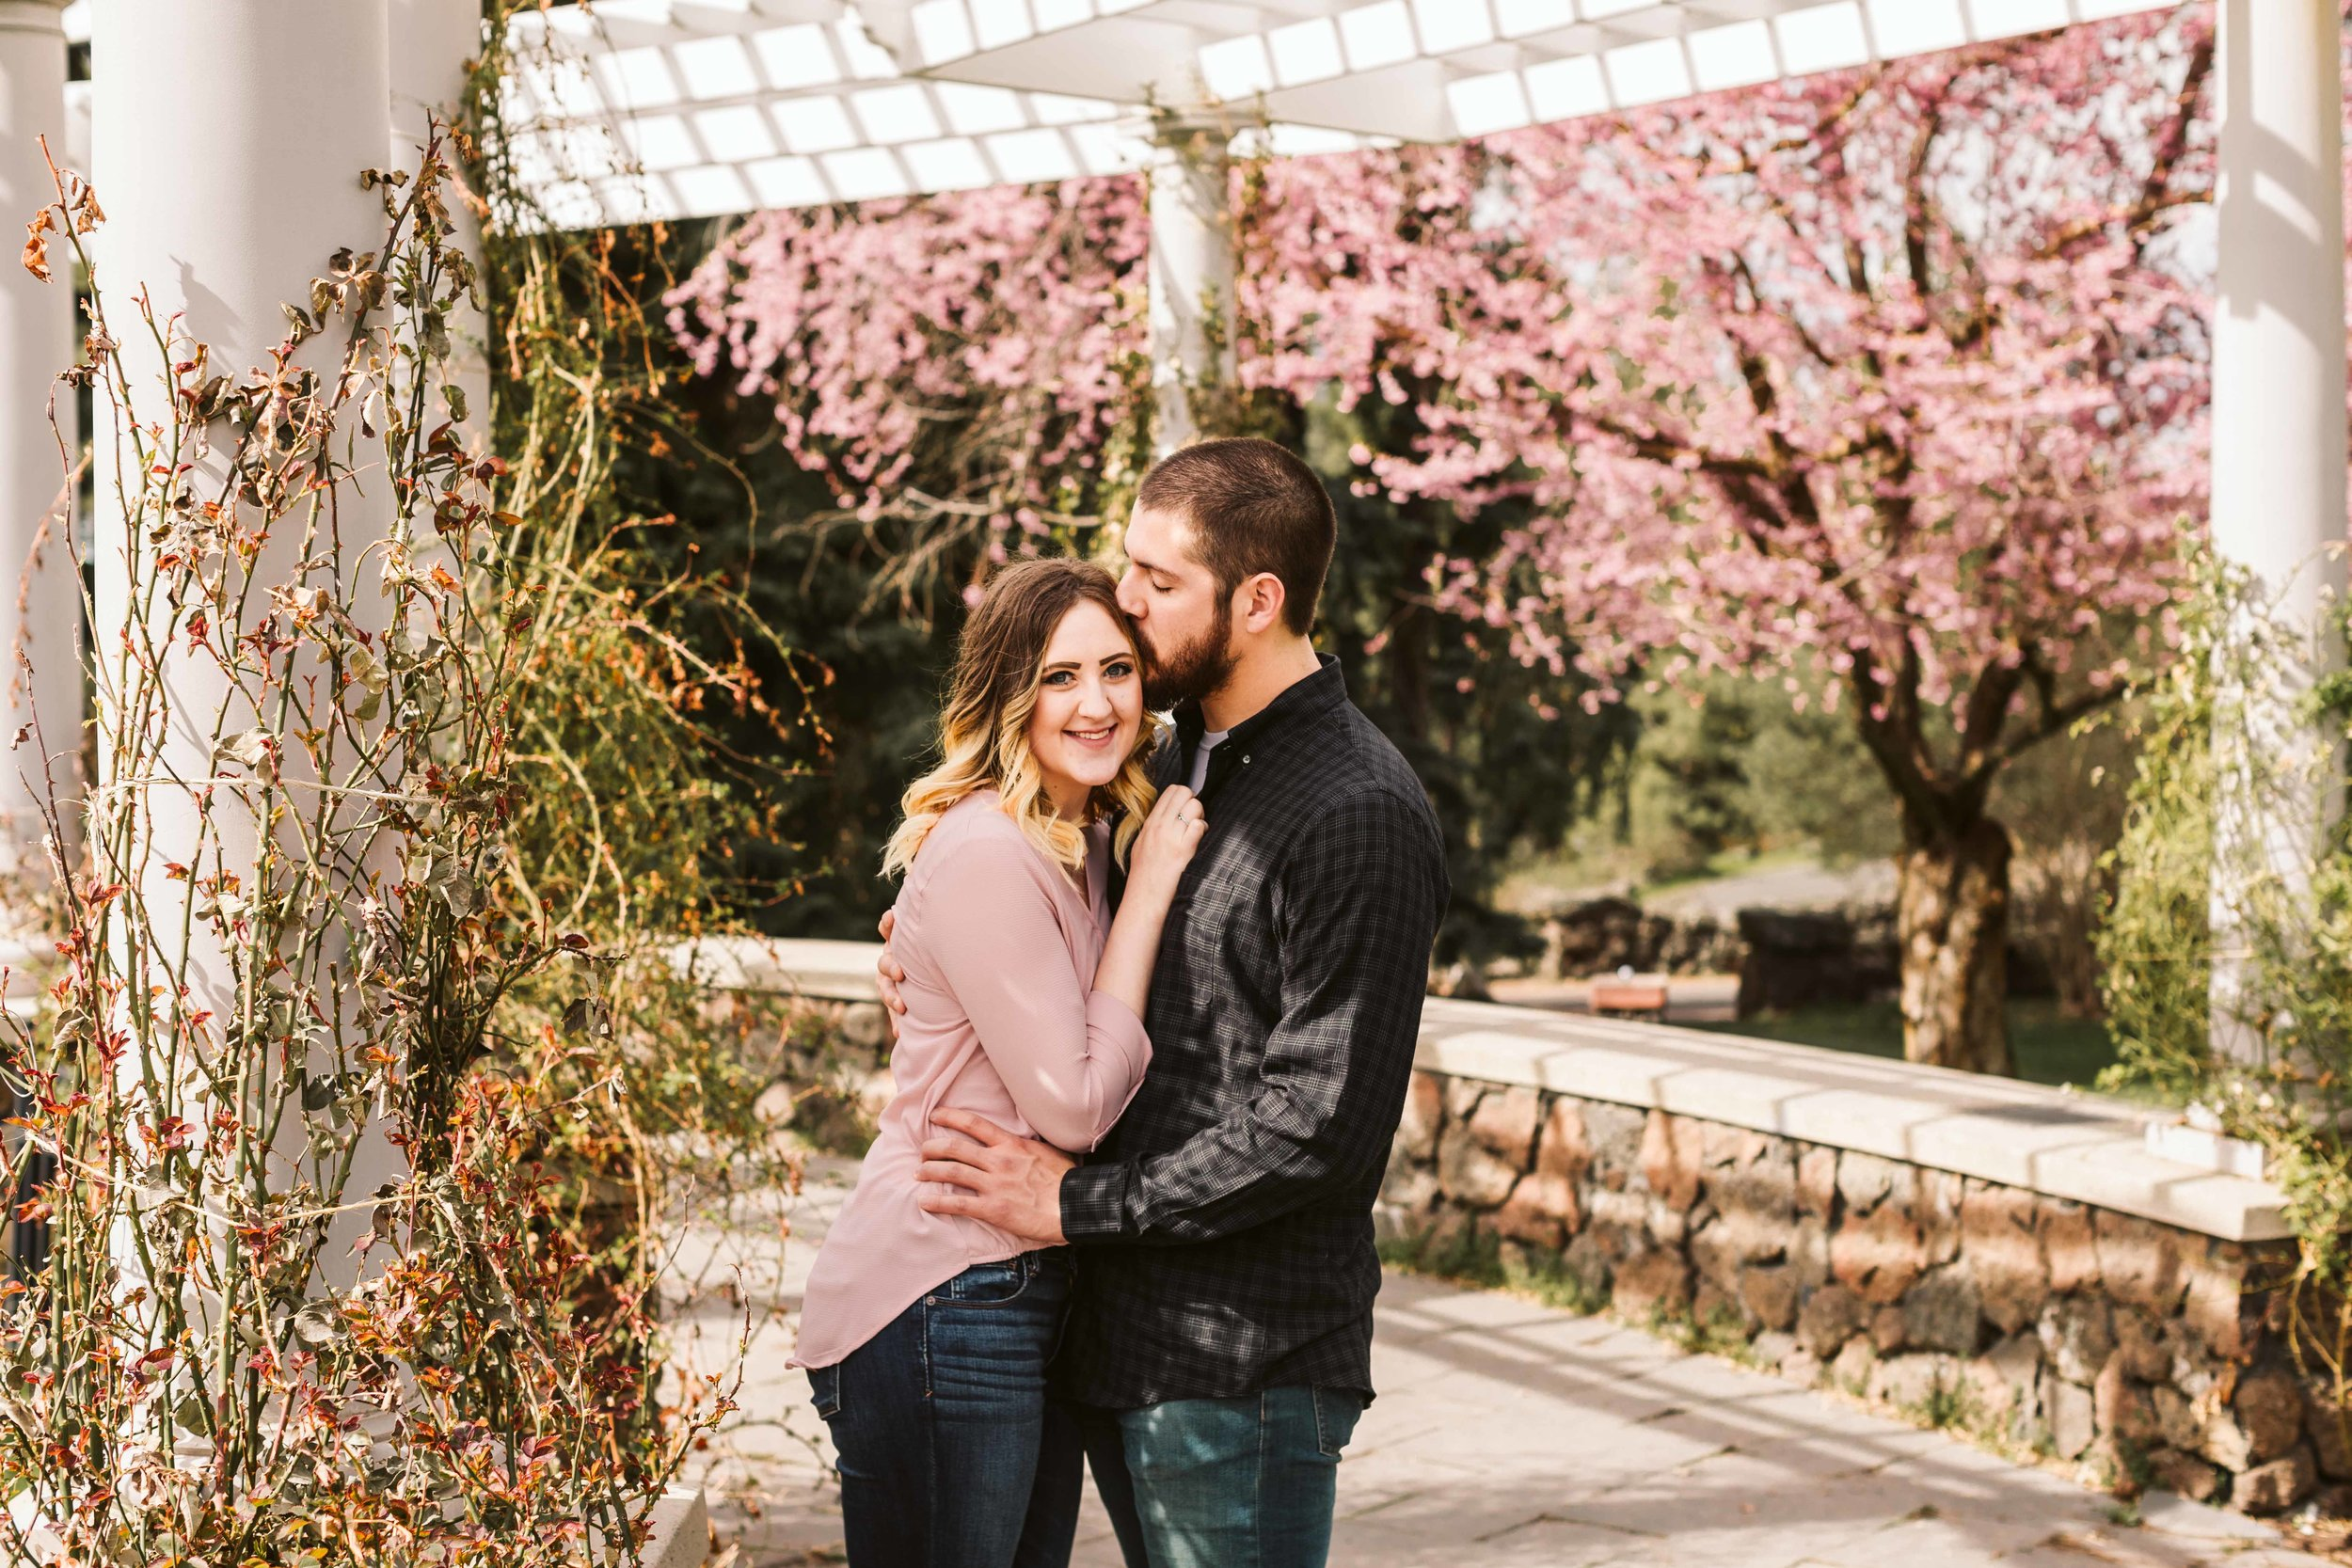 spokane-engagement-photographer-17.jpg